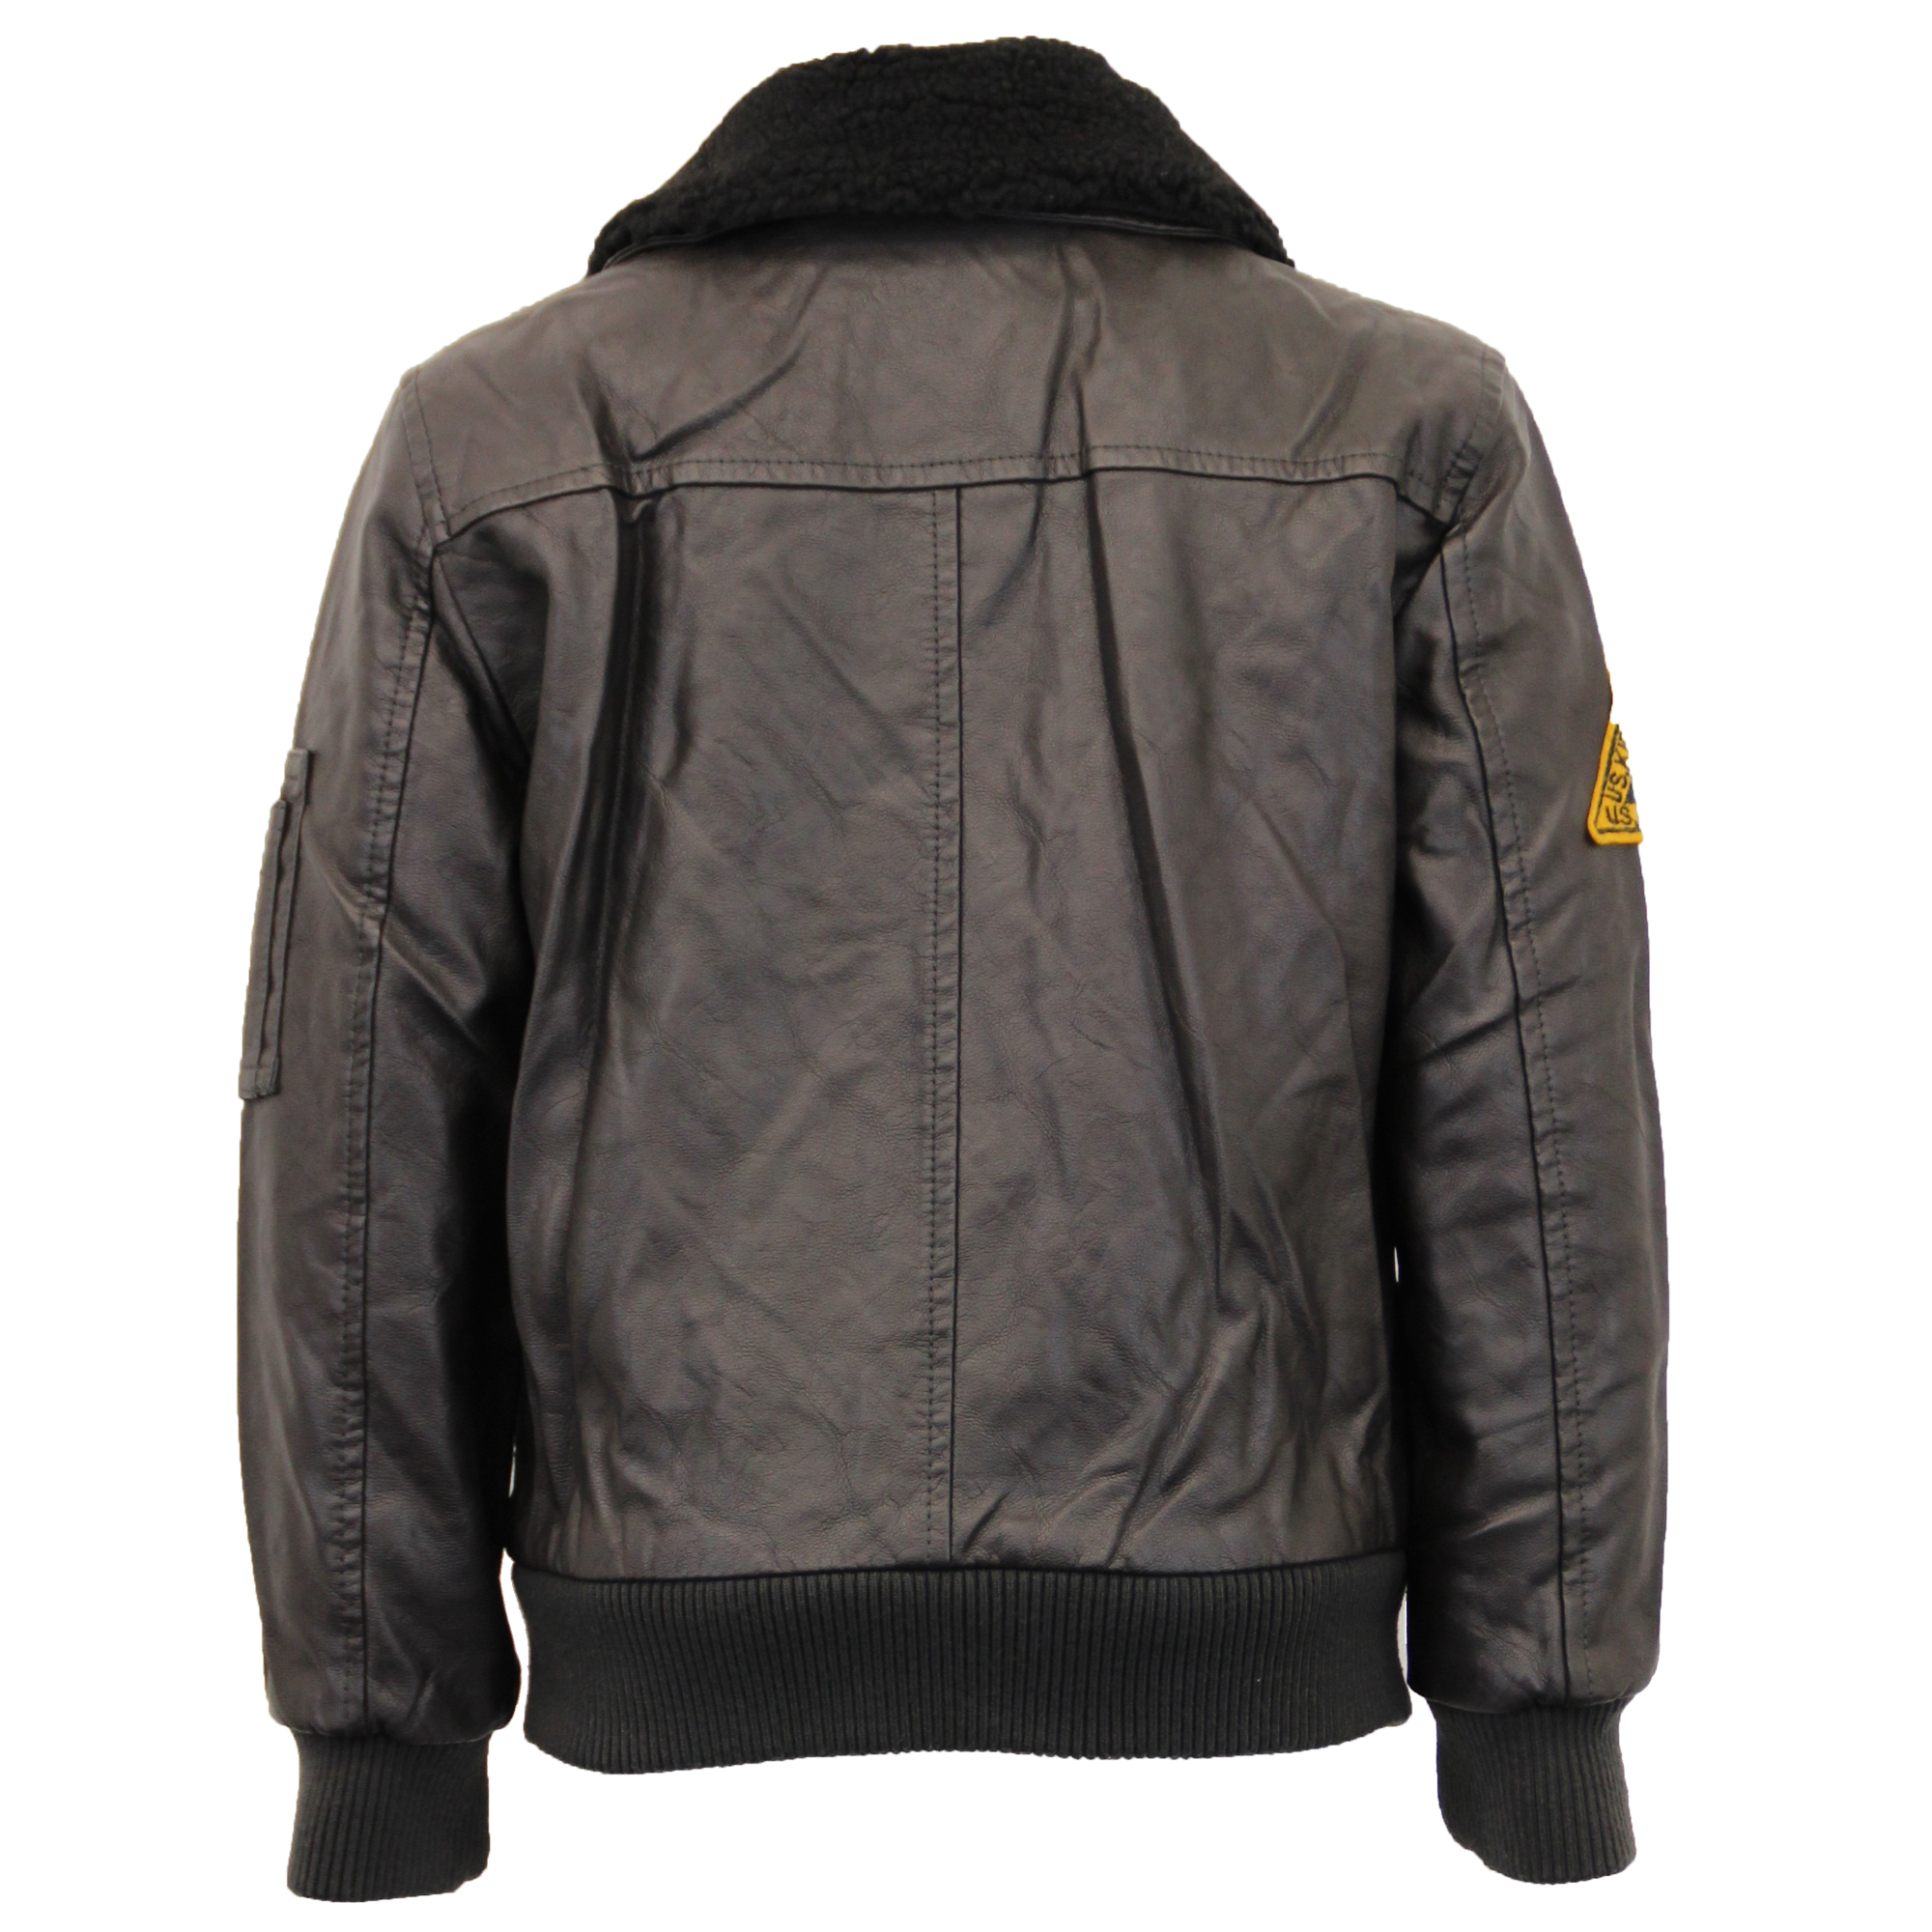 Landing Leathers Air Force Men's A-2 Distressed Leather Flight Jacket (Regular & Tall) Sold by Luxury Lane. $ $ Aeropostale Womens Full Zip Bomber Jacket. Sold by Tags Weekly. $ $ J2 Womens Quilted Dyed Bomber Jacket. Sold by Tags Weekly. $ - $